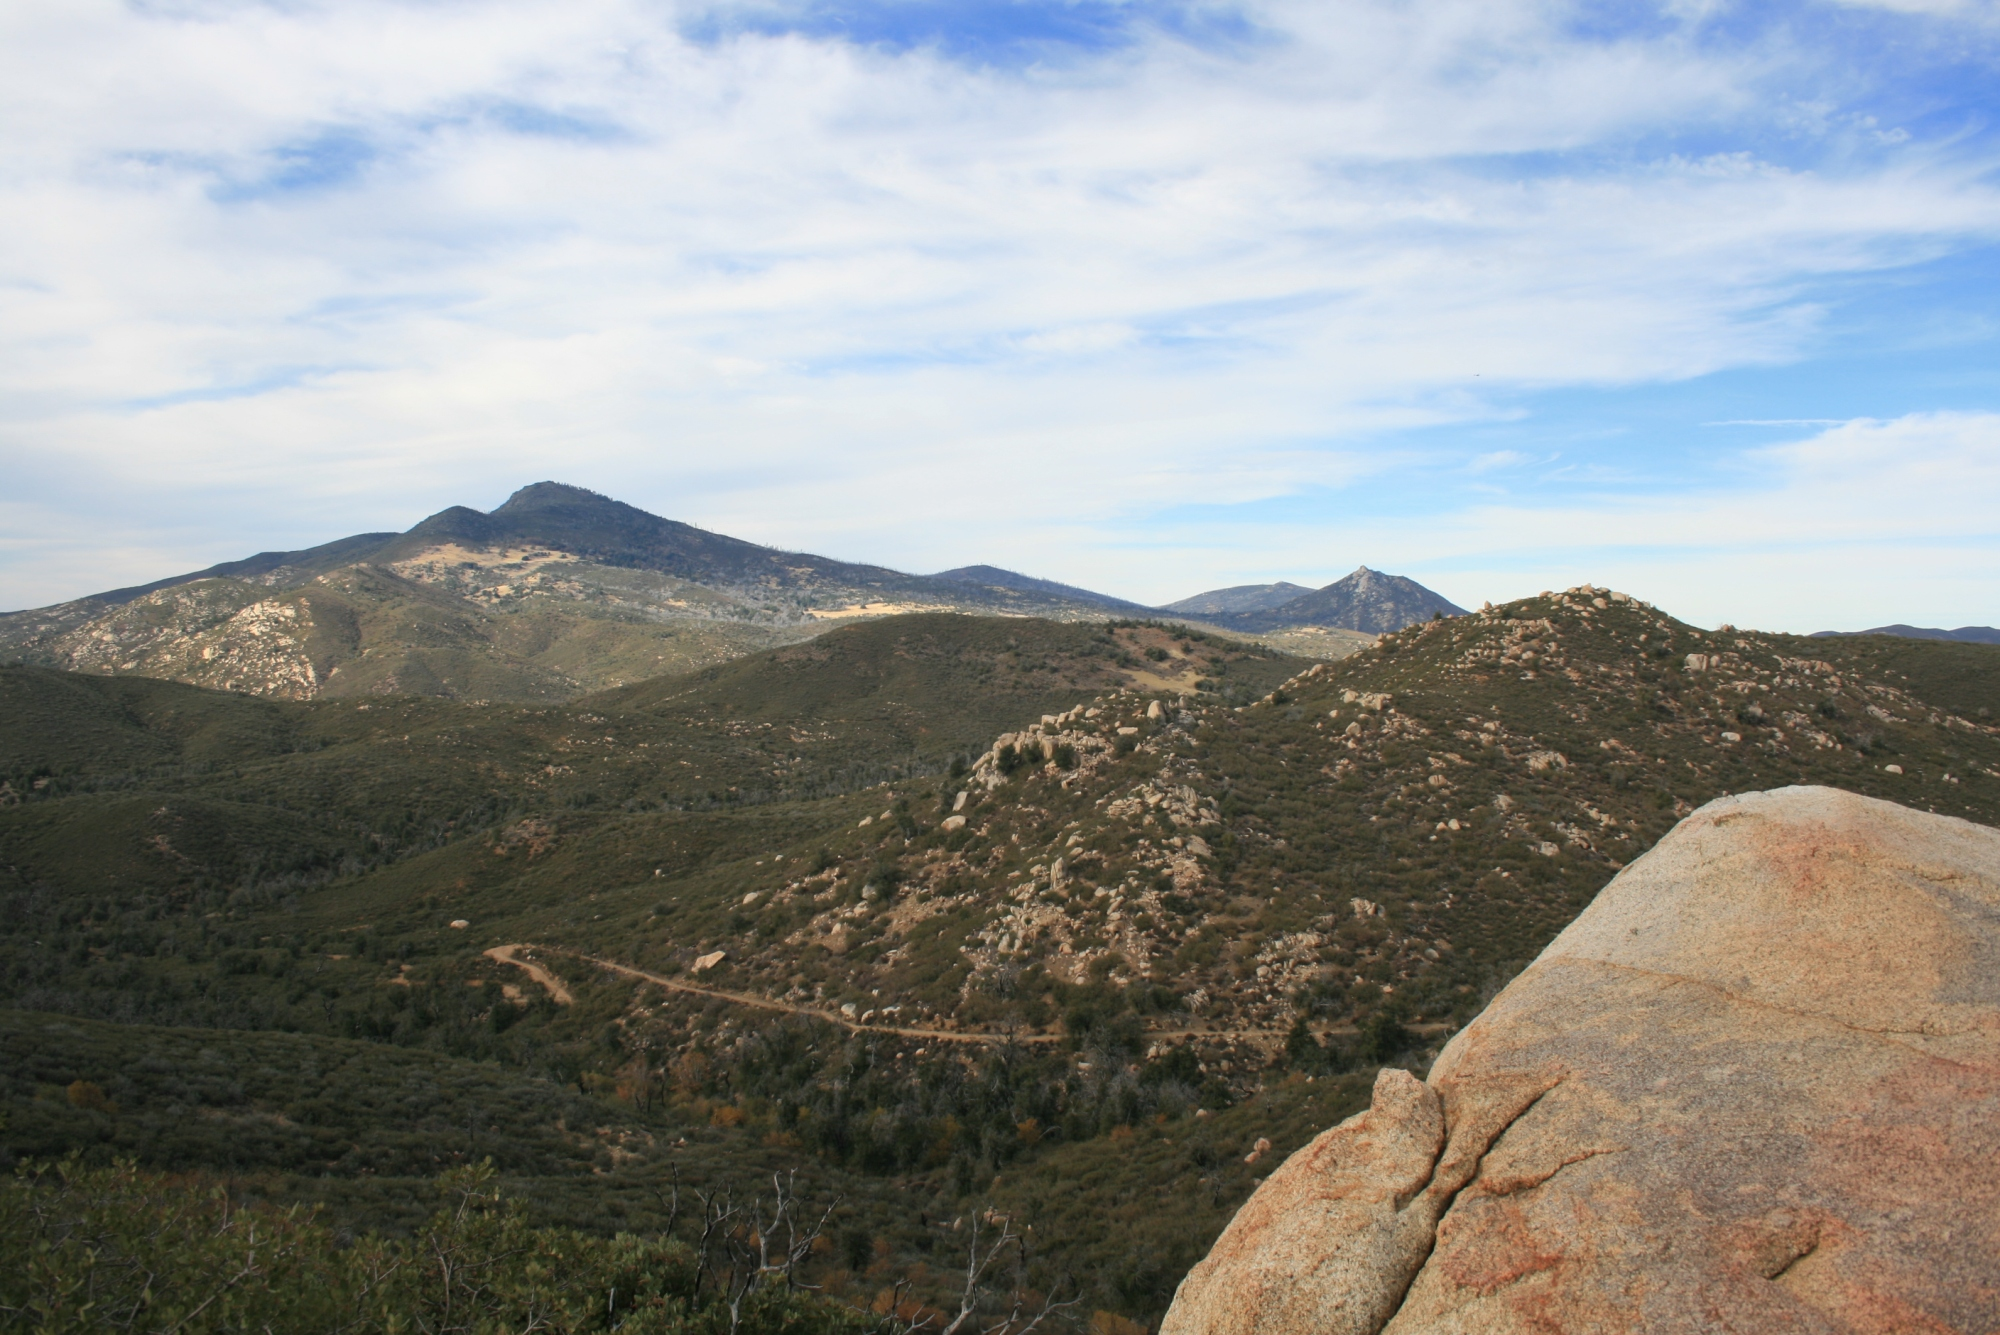 View of Cuyamaca Peak from the summit of Oakzanita Peak, San Diego County, CA